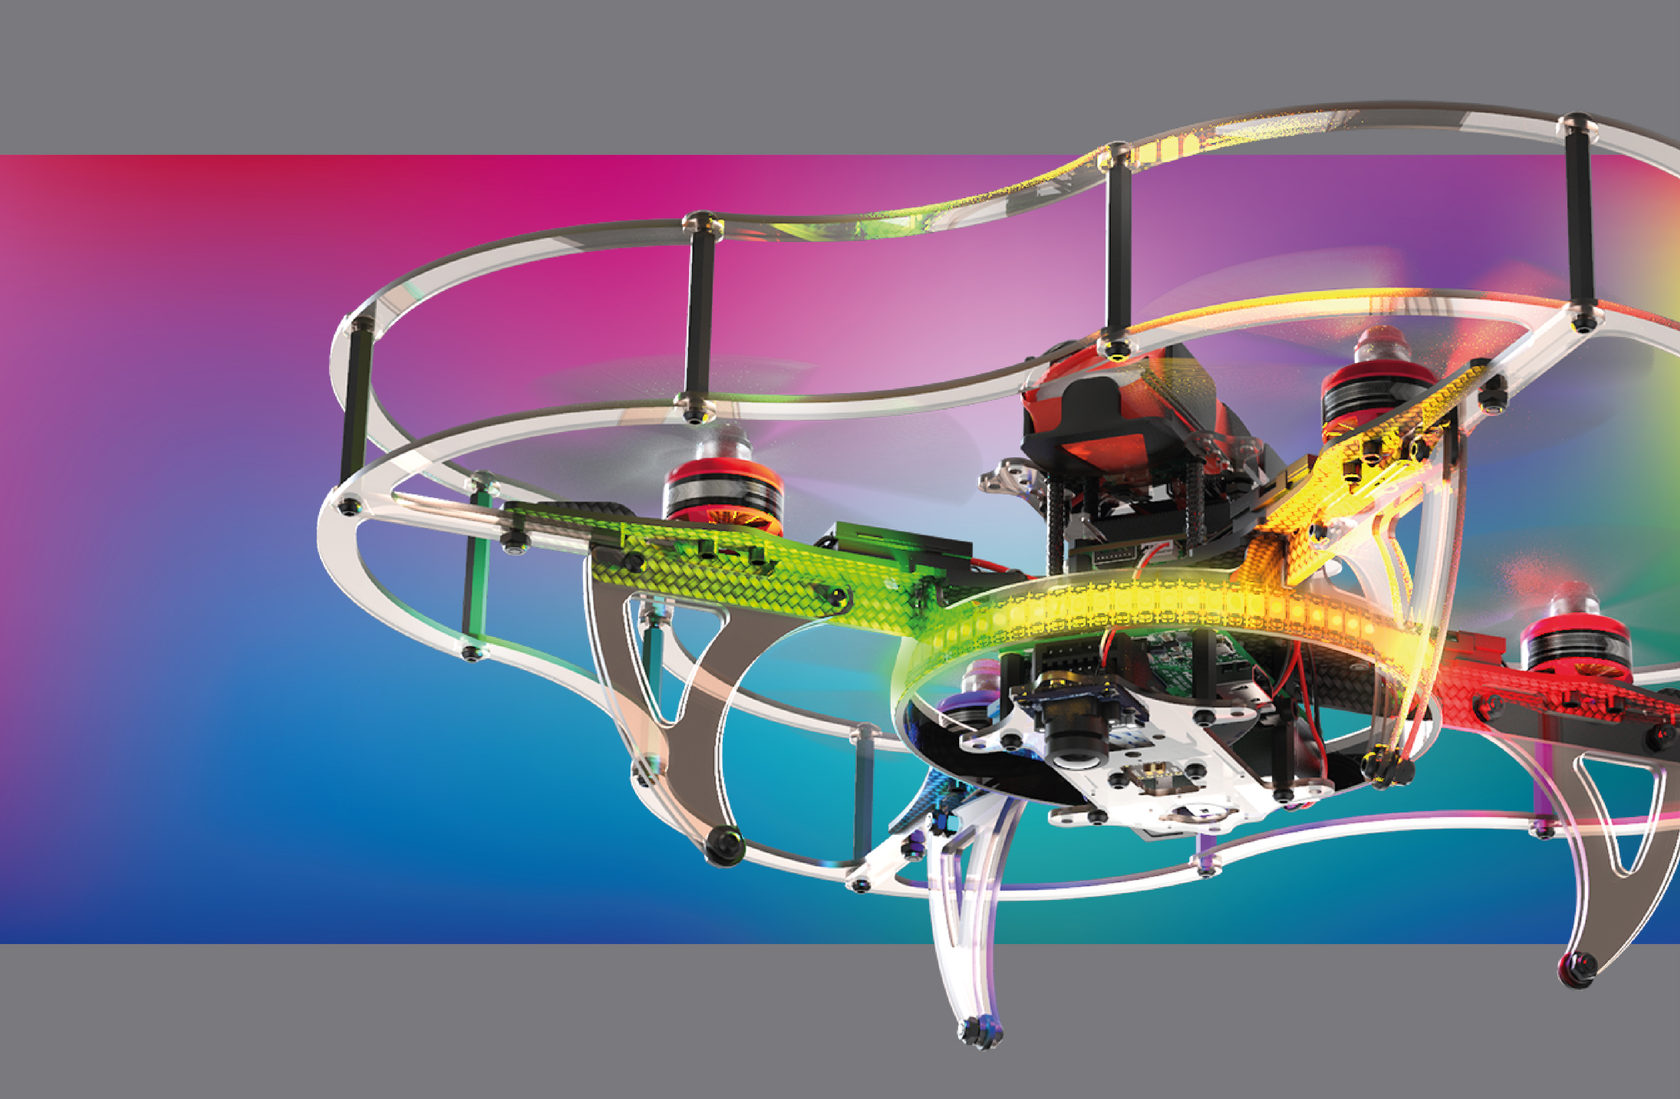 COEX Clever 4 Code Drone — Programmable Quadcopter Kit